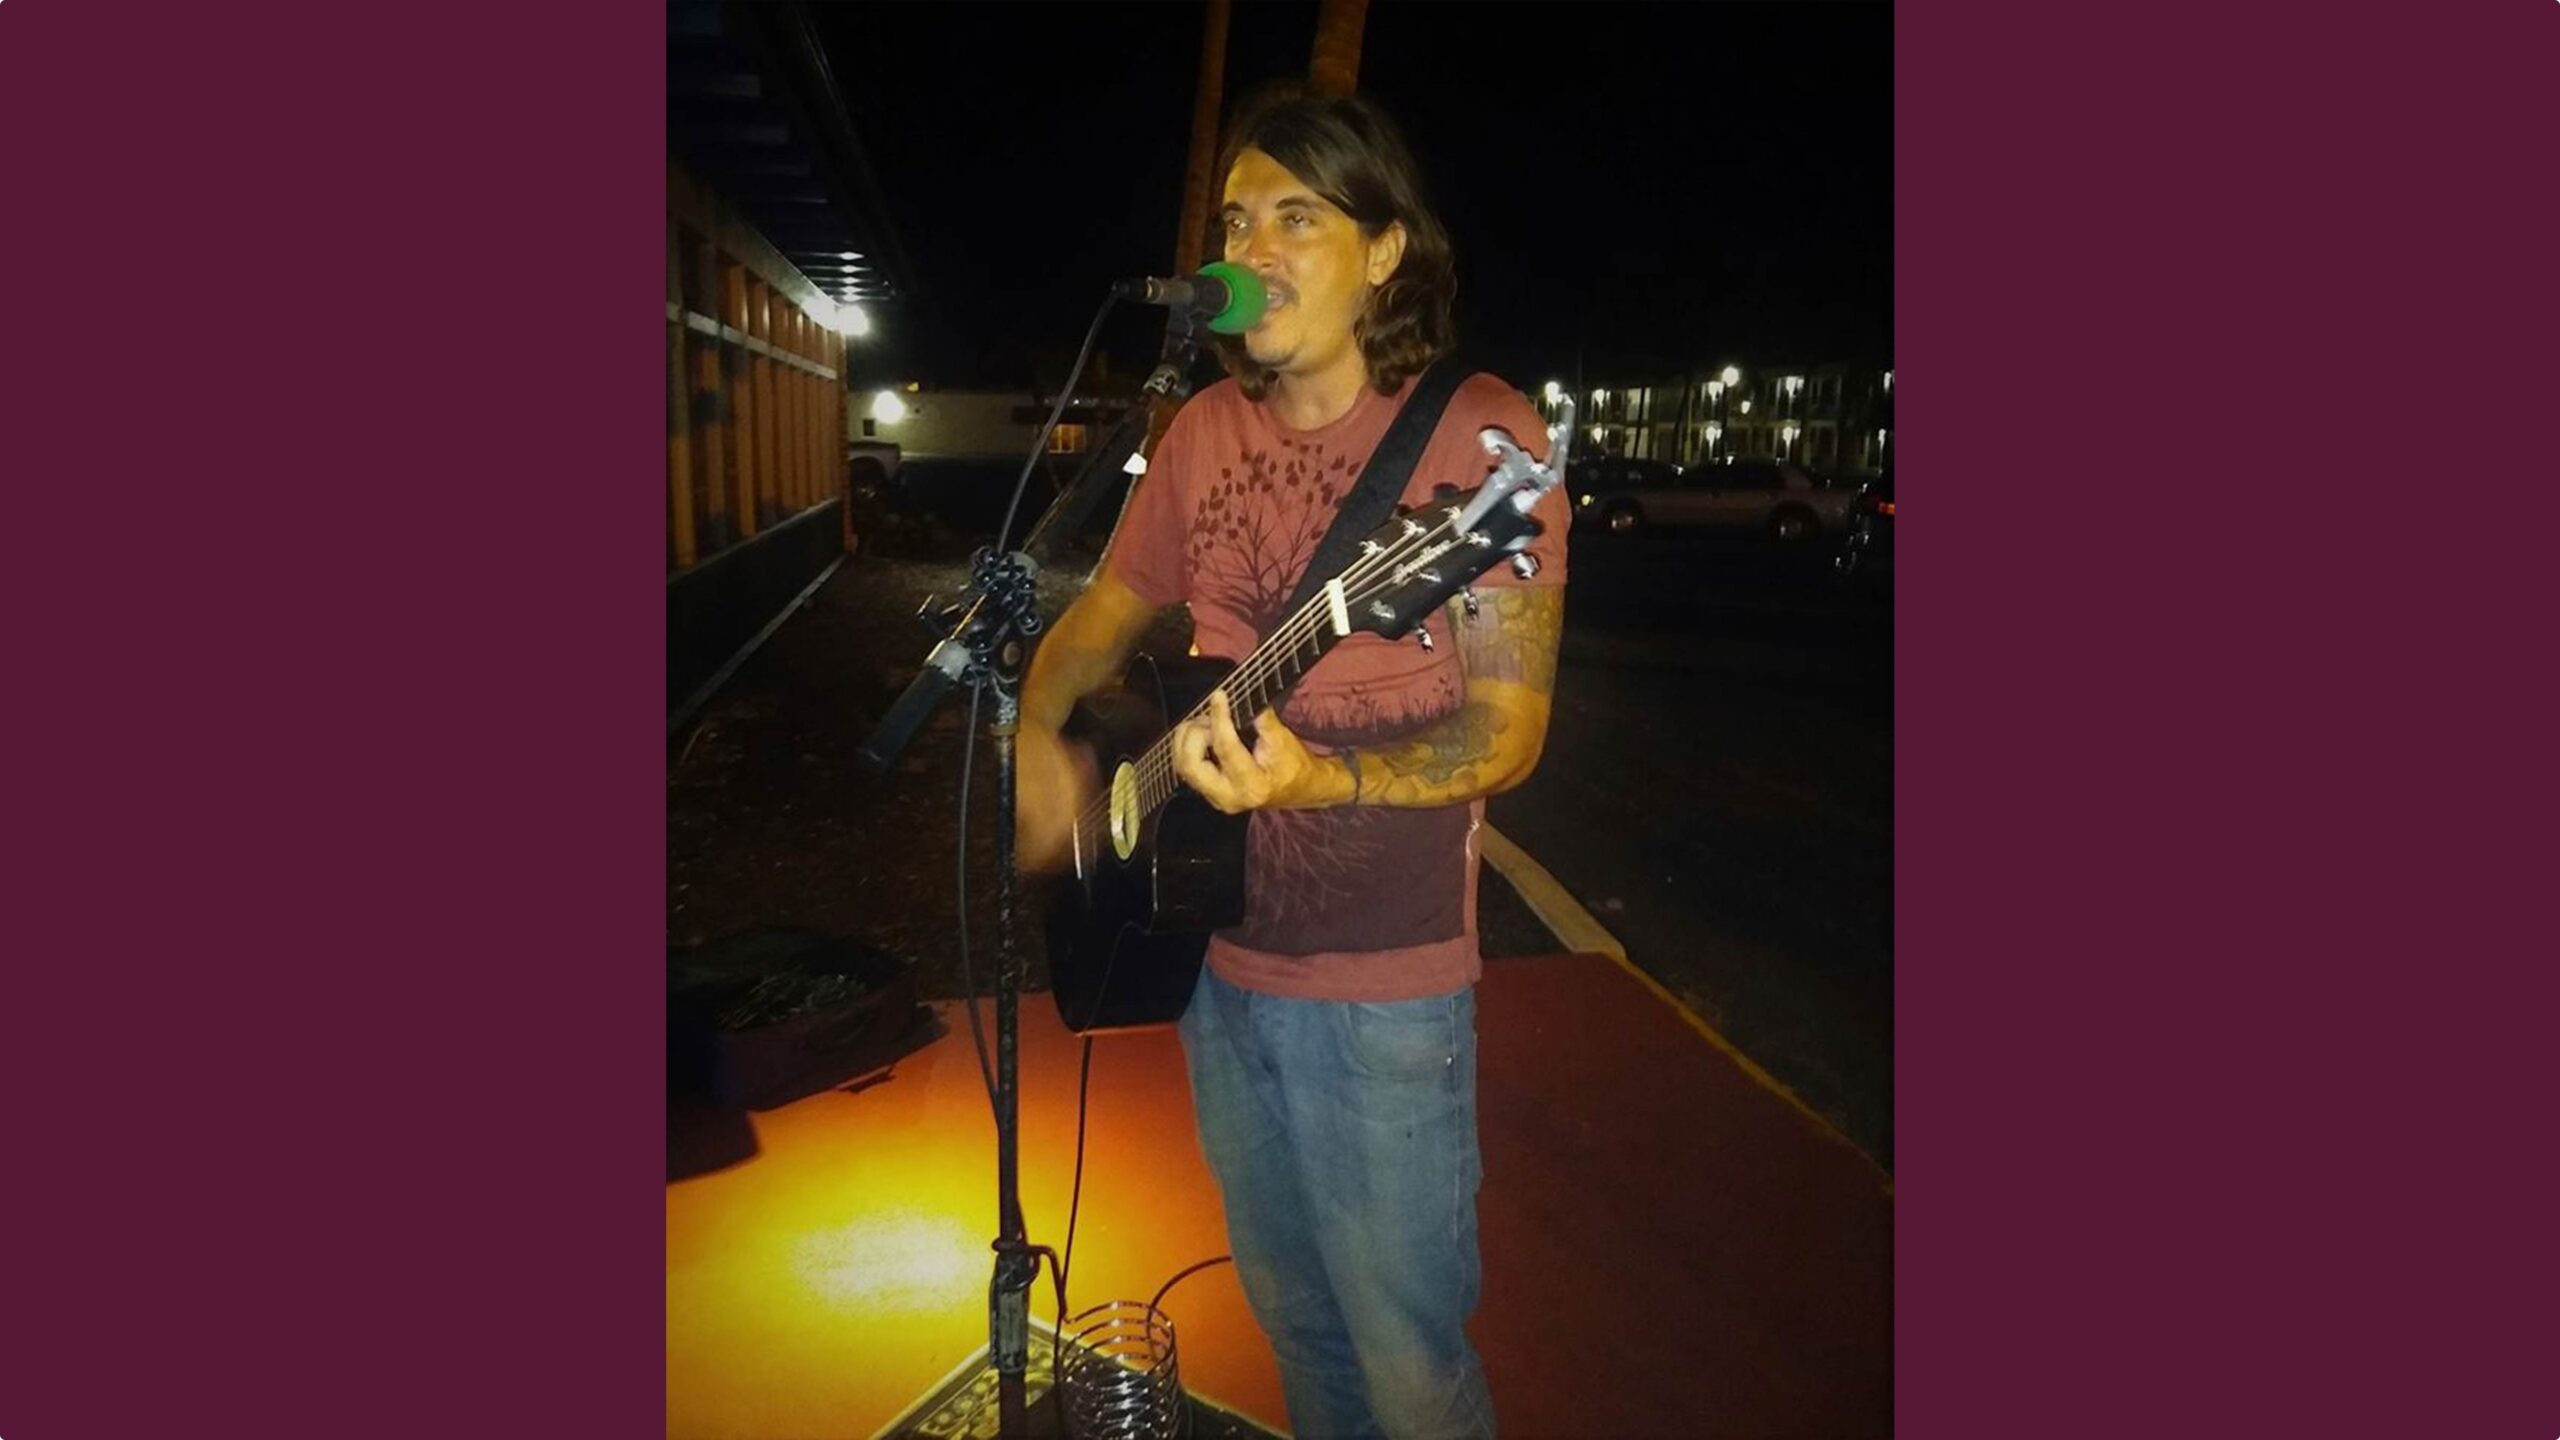 Aaron Seyferth, a singer and guitar player, plays live music at Sanibel Seafood Grille